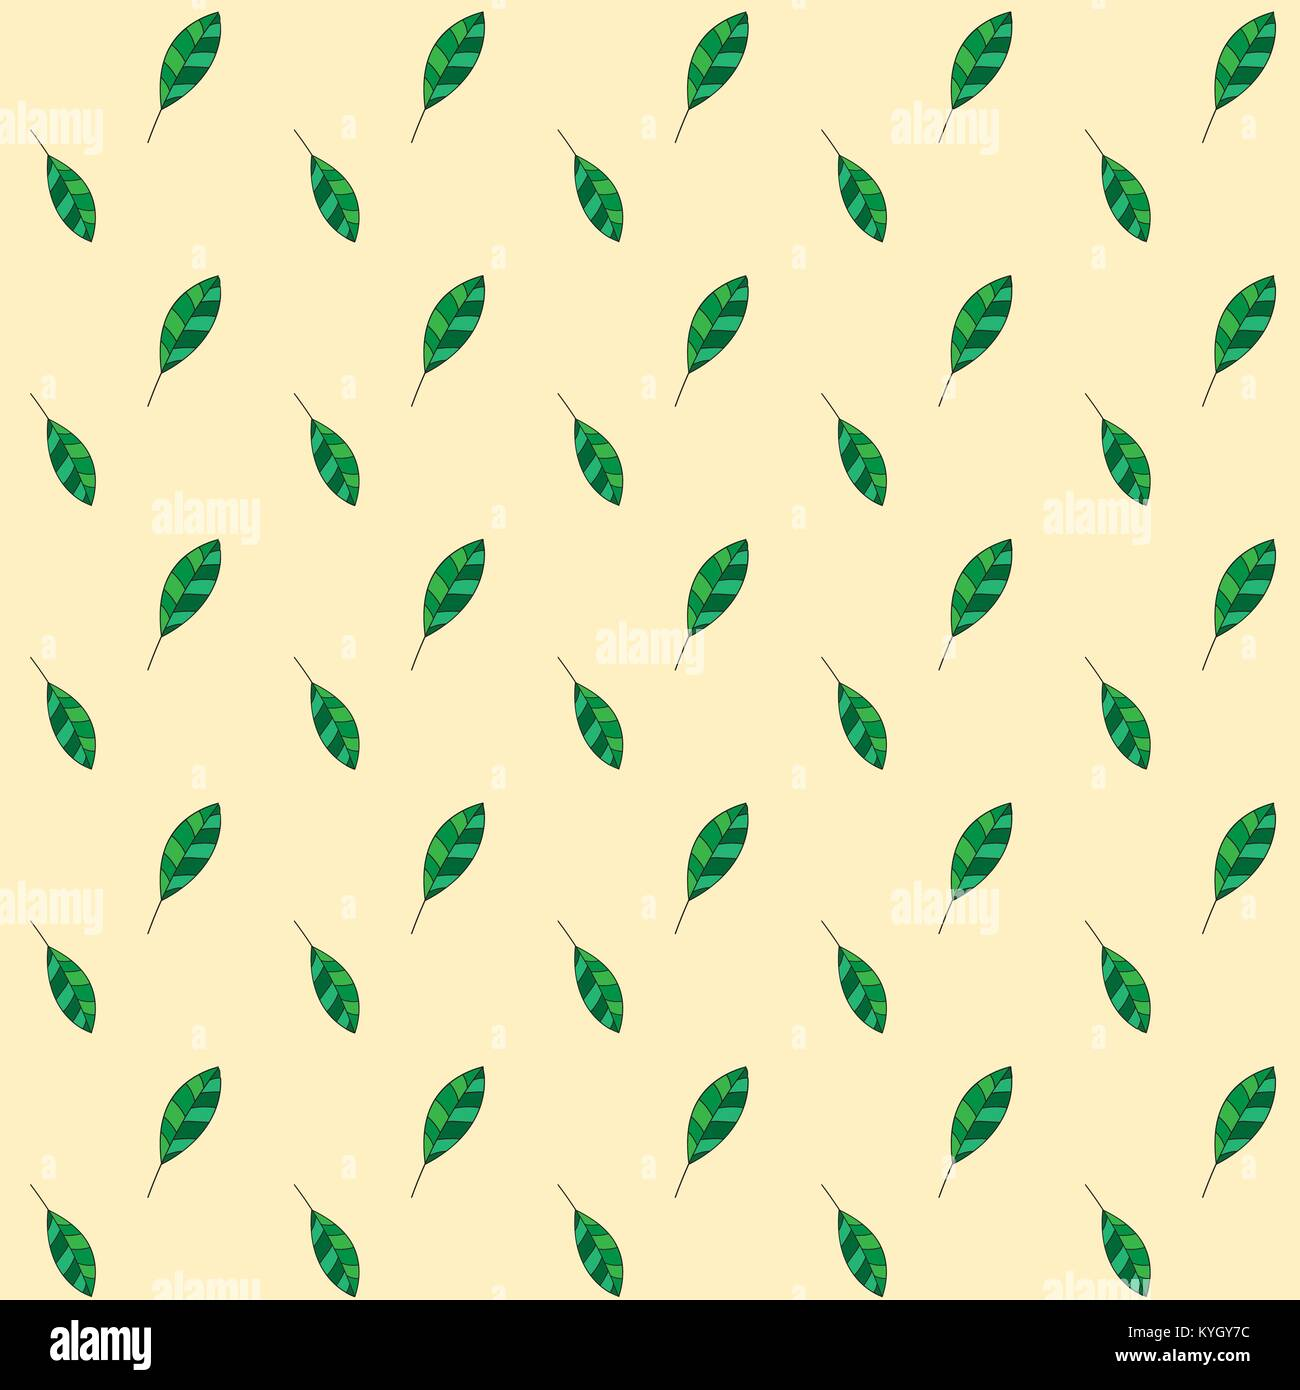 Seamless leaf pattern on yellow background. Green Leaf vector pattern. Floral pattern vector background. Fallen Stock Vector